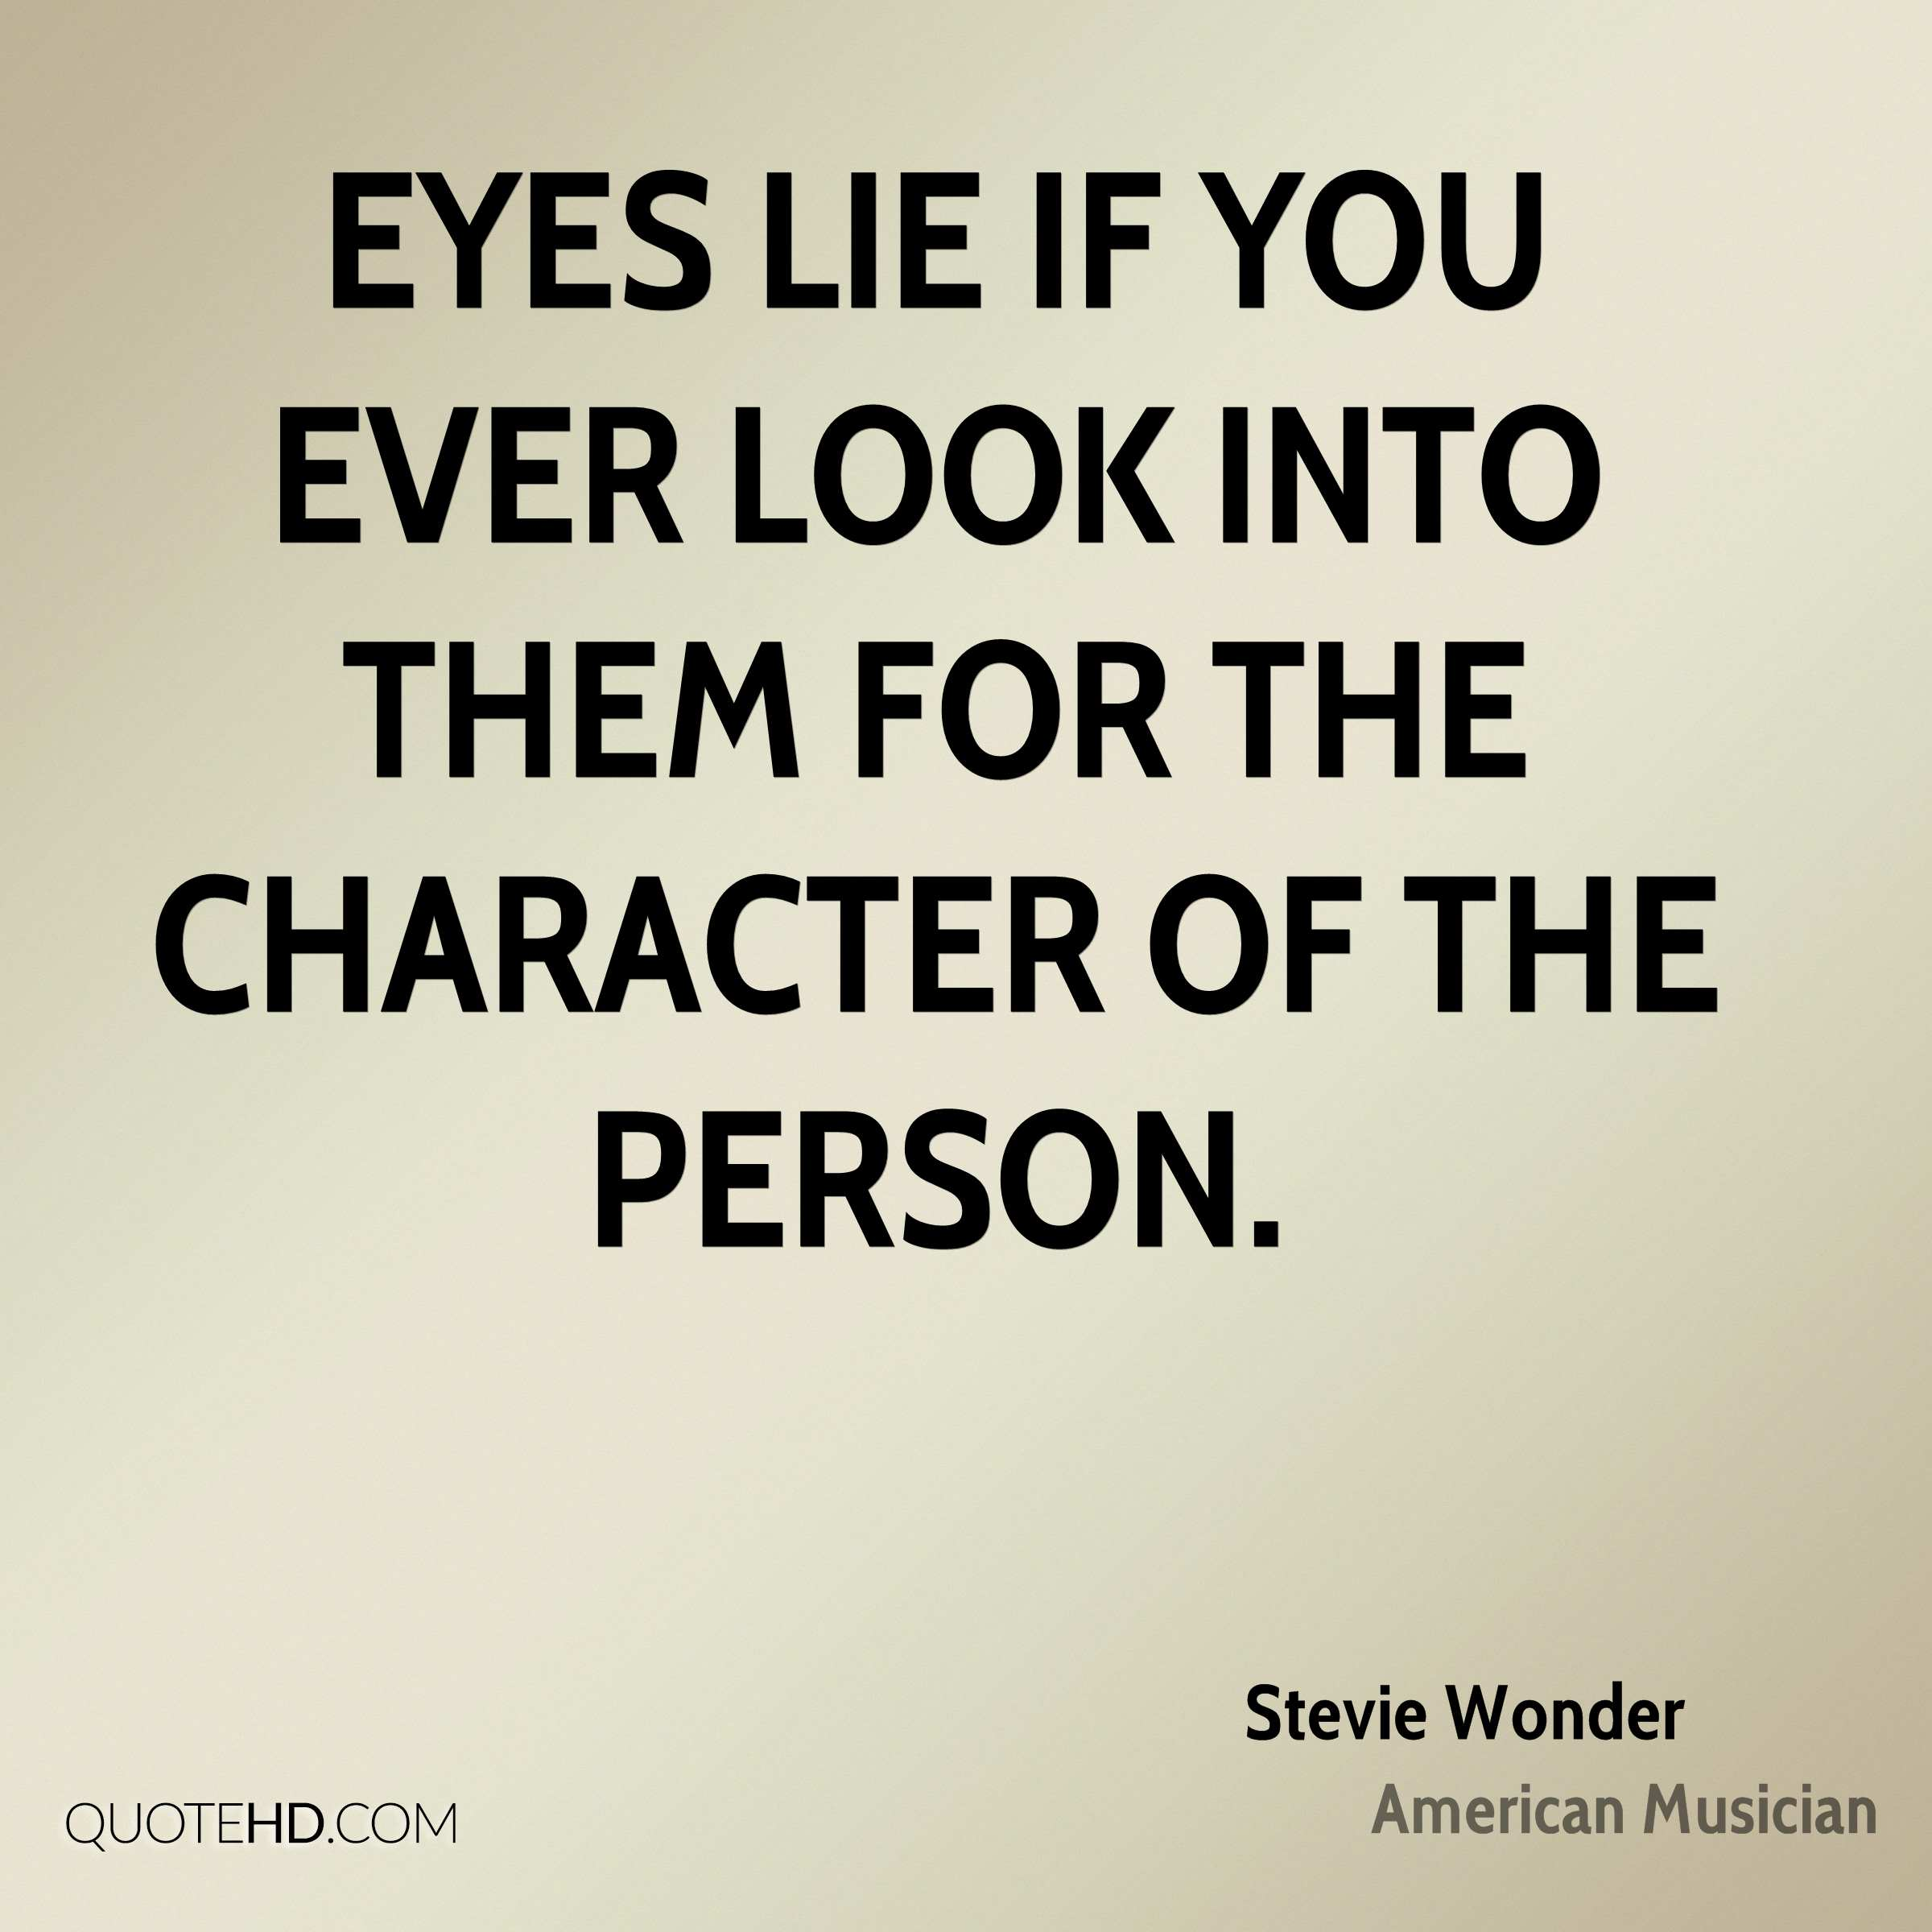 Eyes lie if you ever look into them for the character of the person.